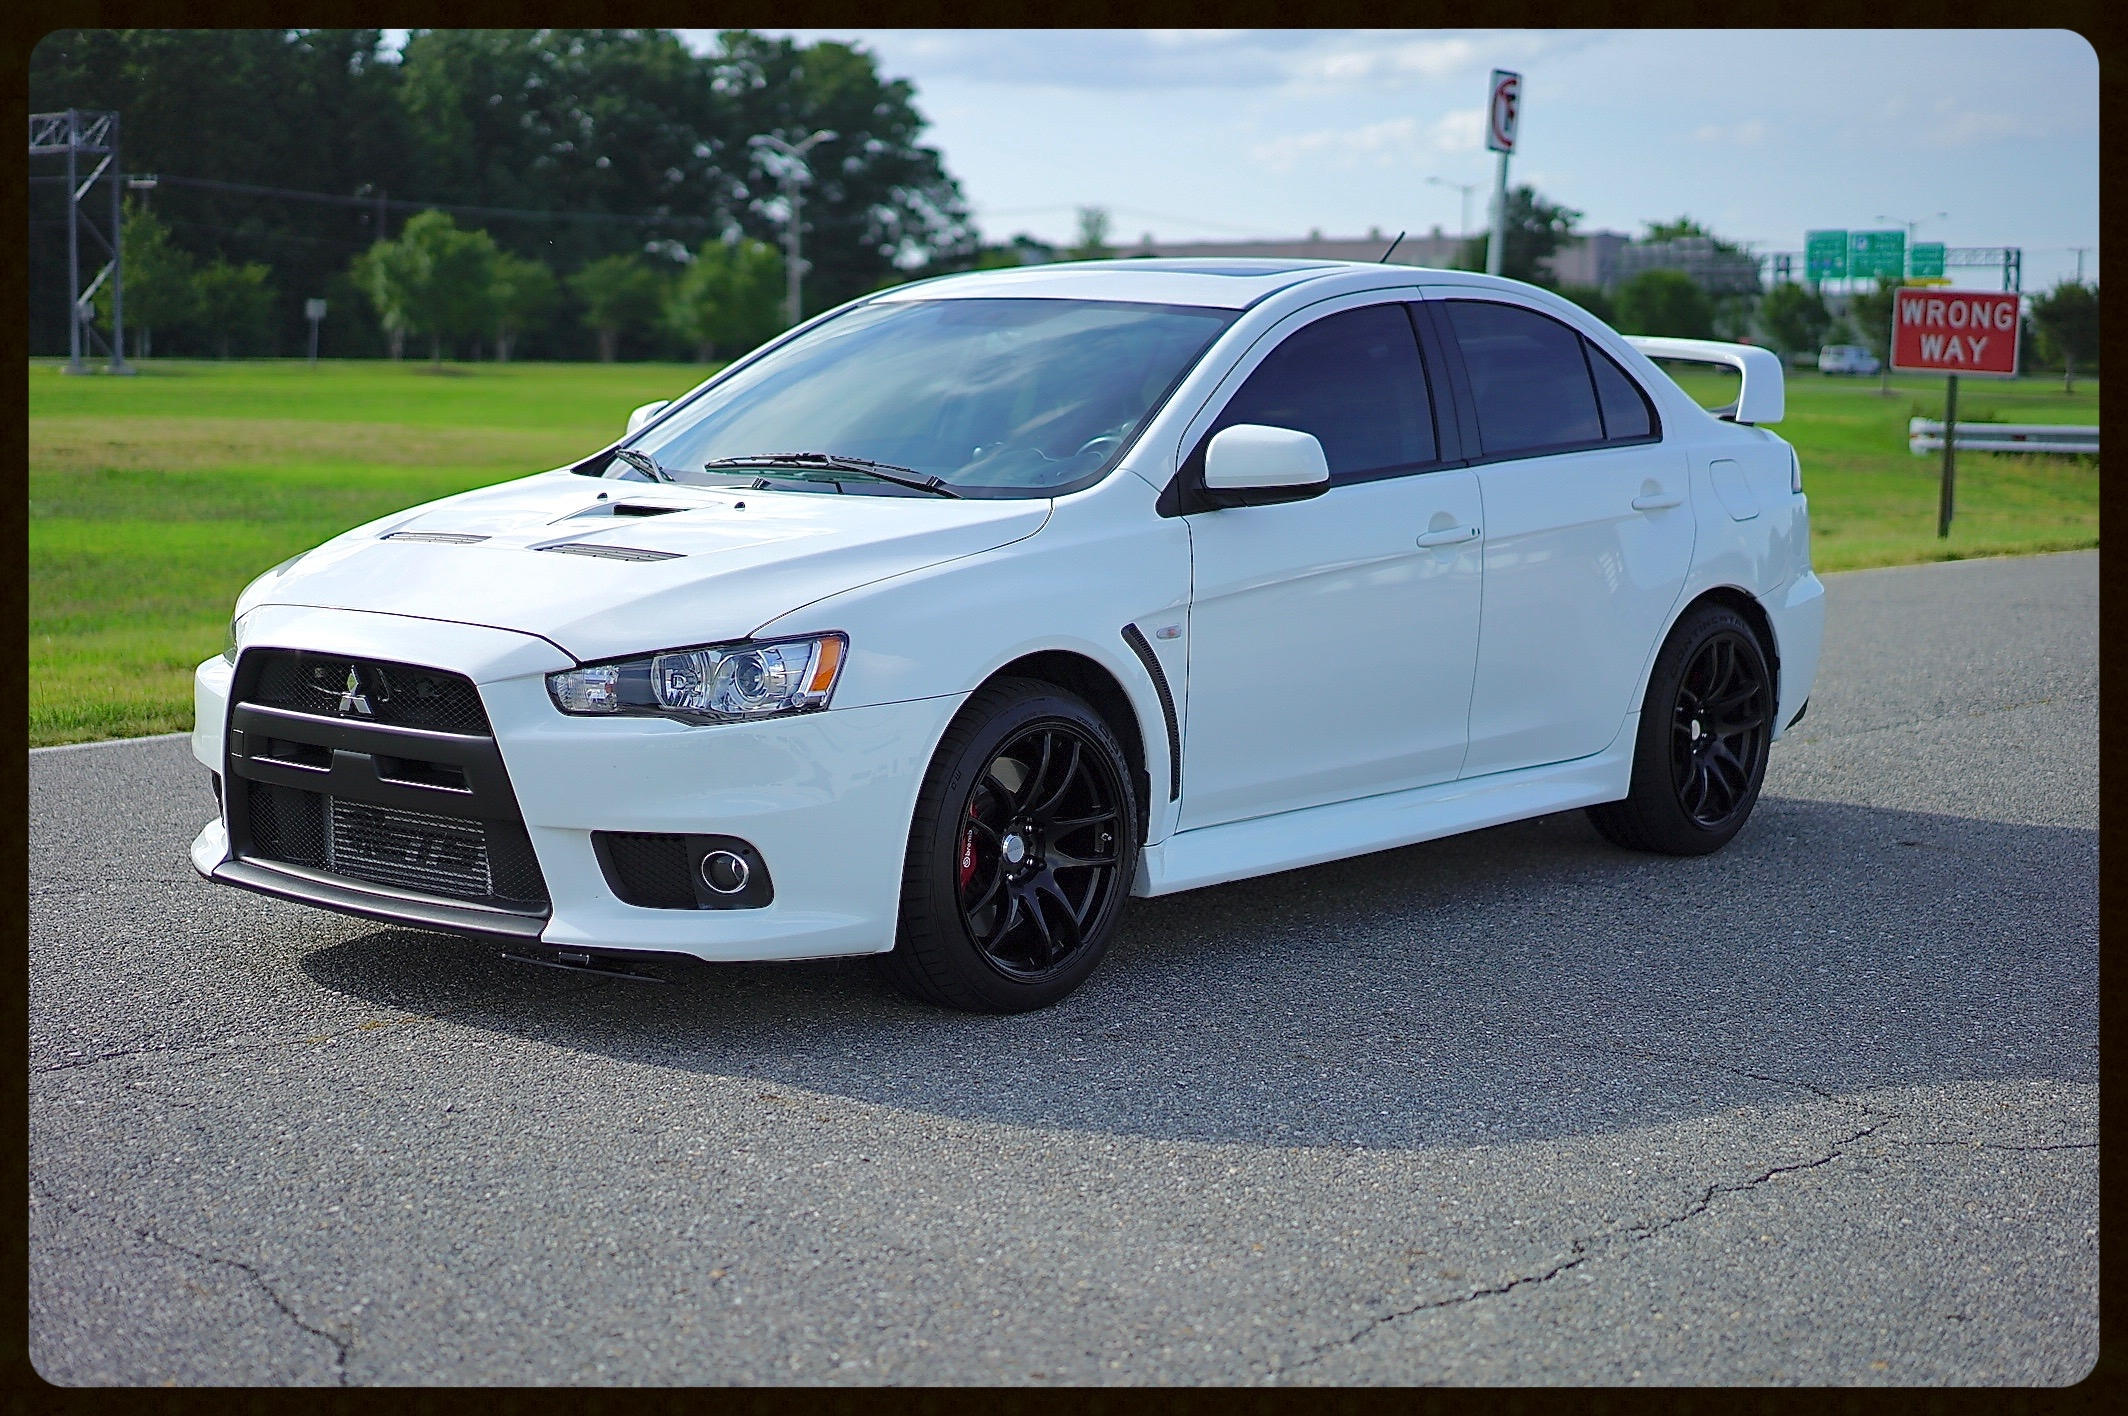 2013 Evolution ETS Built....1 Owner with only 24k Miles...This Evo has EVERY Upgrade BOLT ON Upgrade and Much More..Leather Recaro Seats